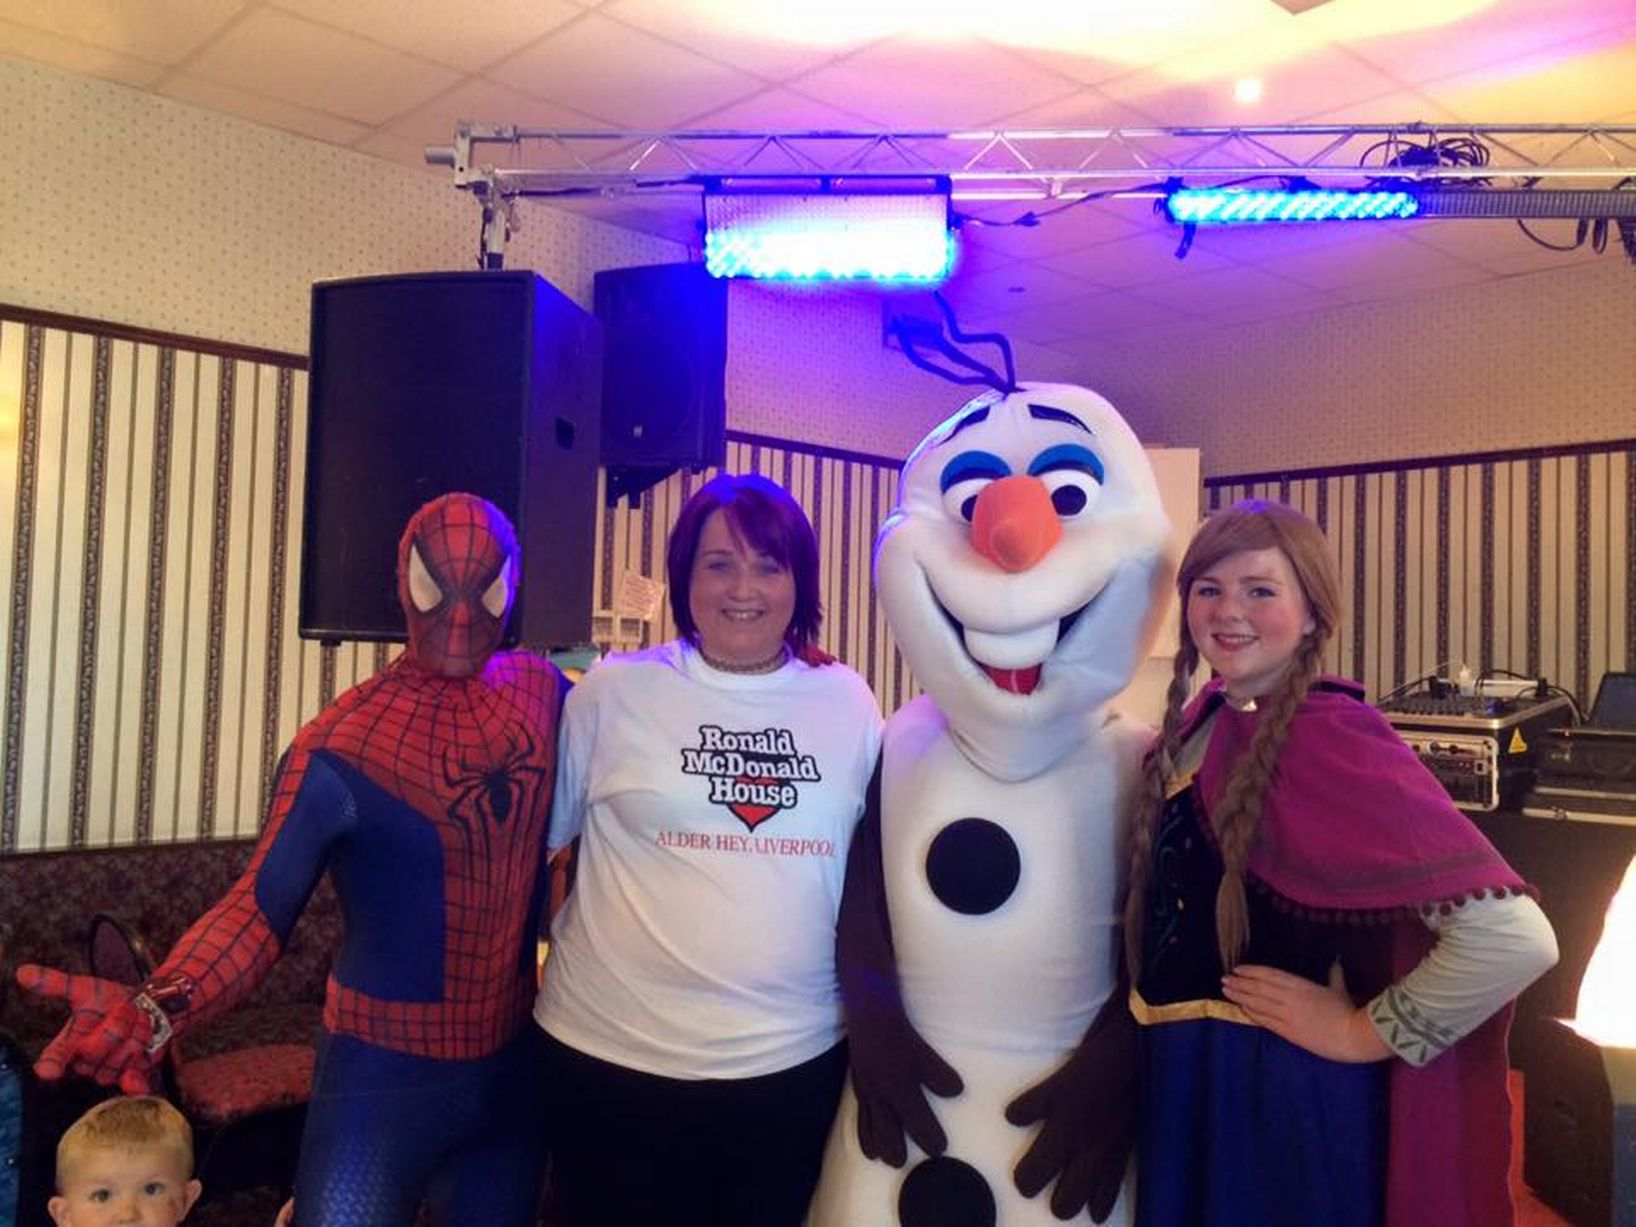 Face Painting Southport Fce Bdacdcacabccbdd